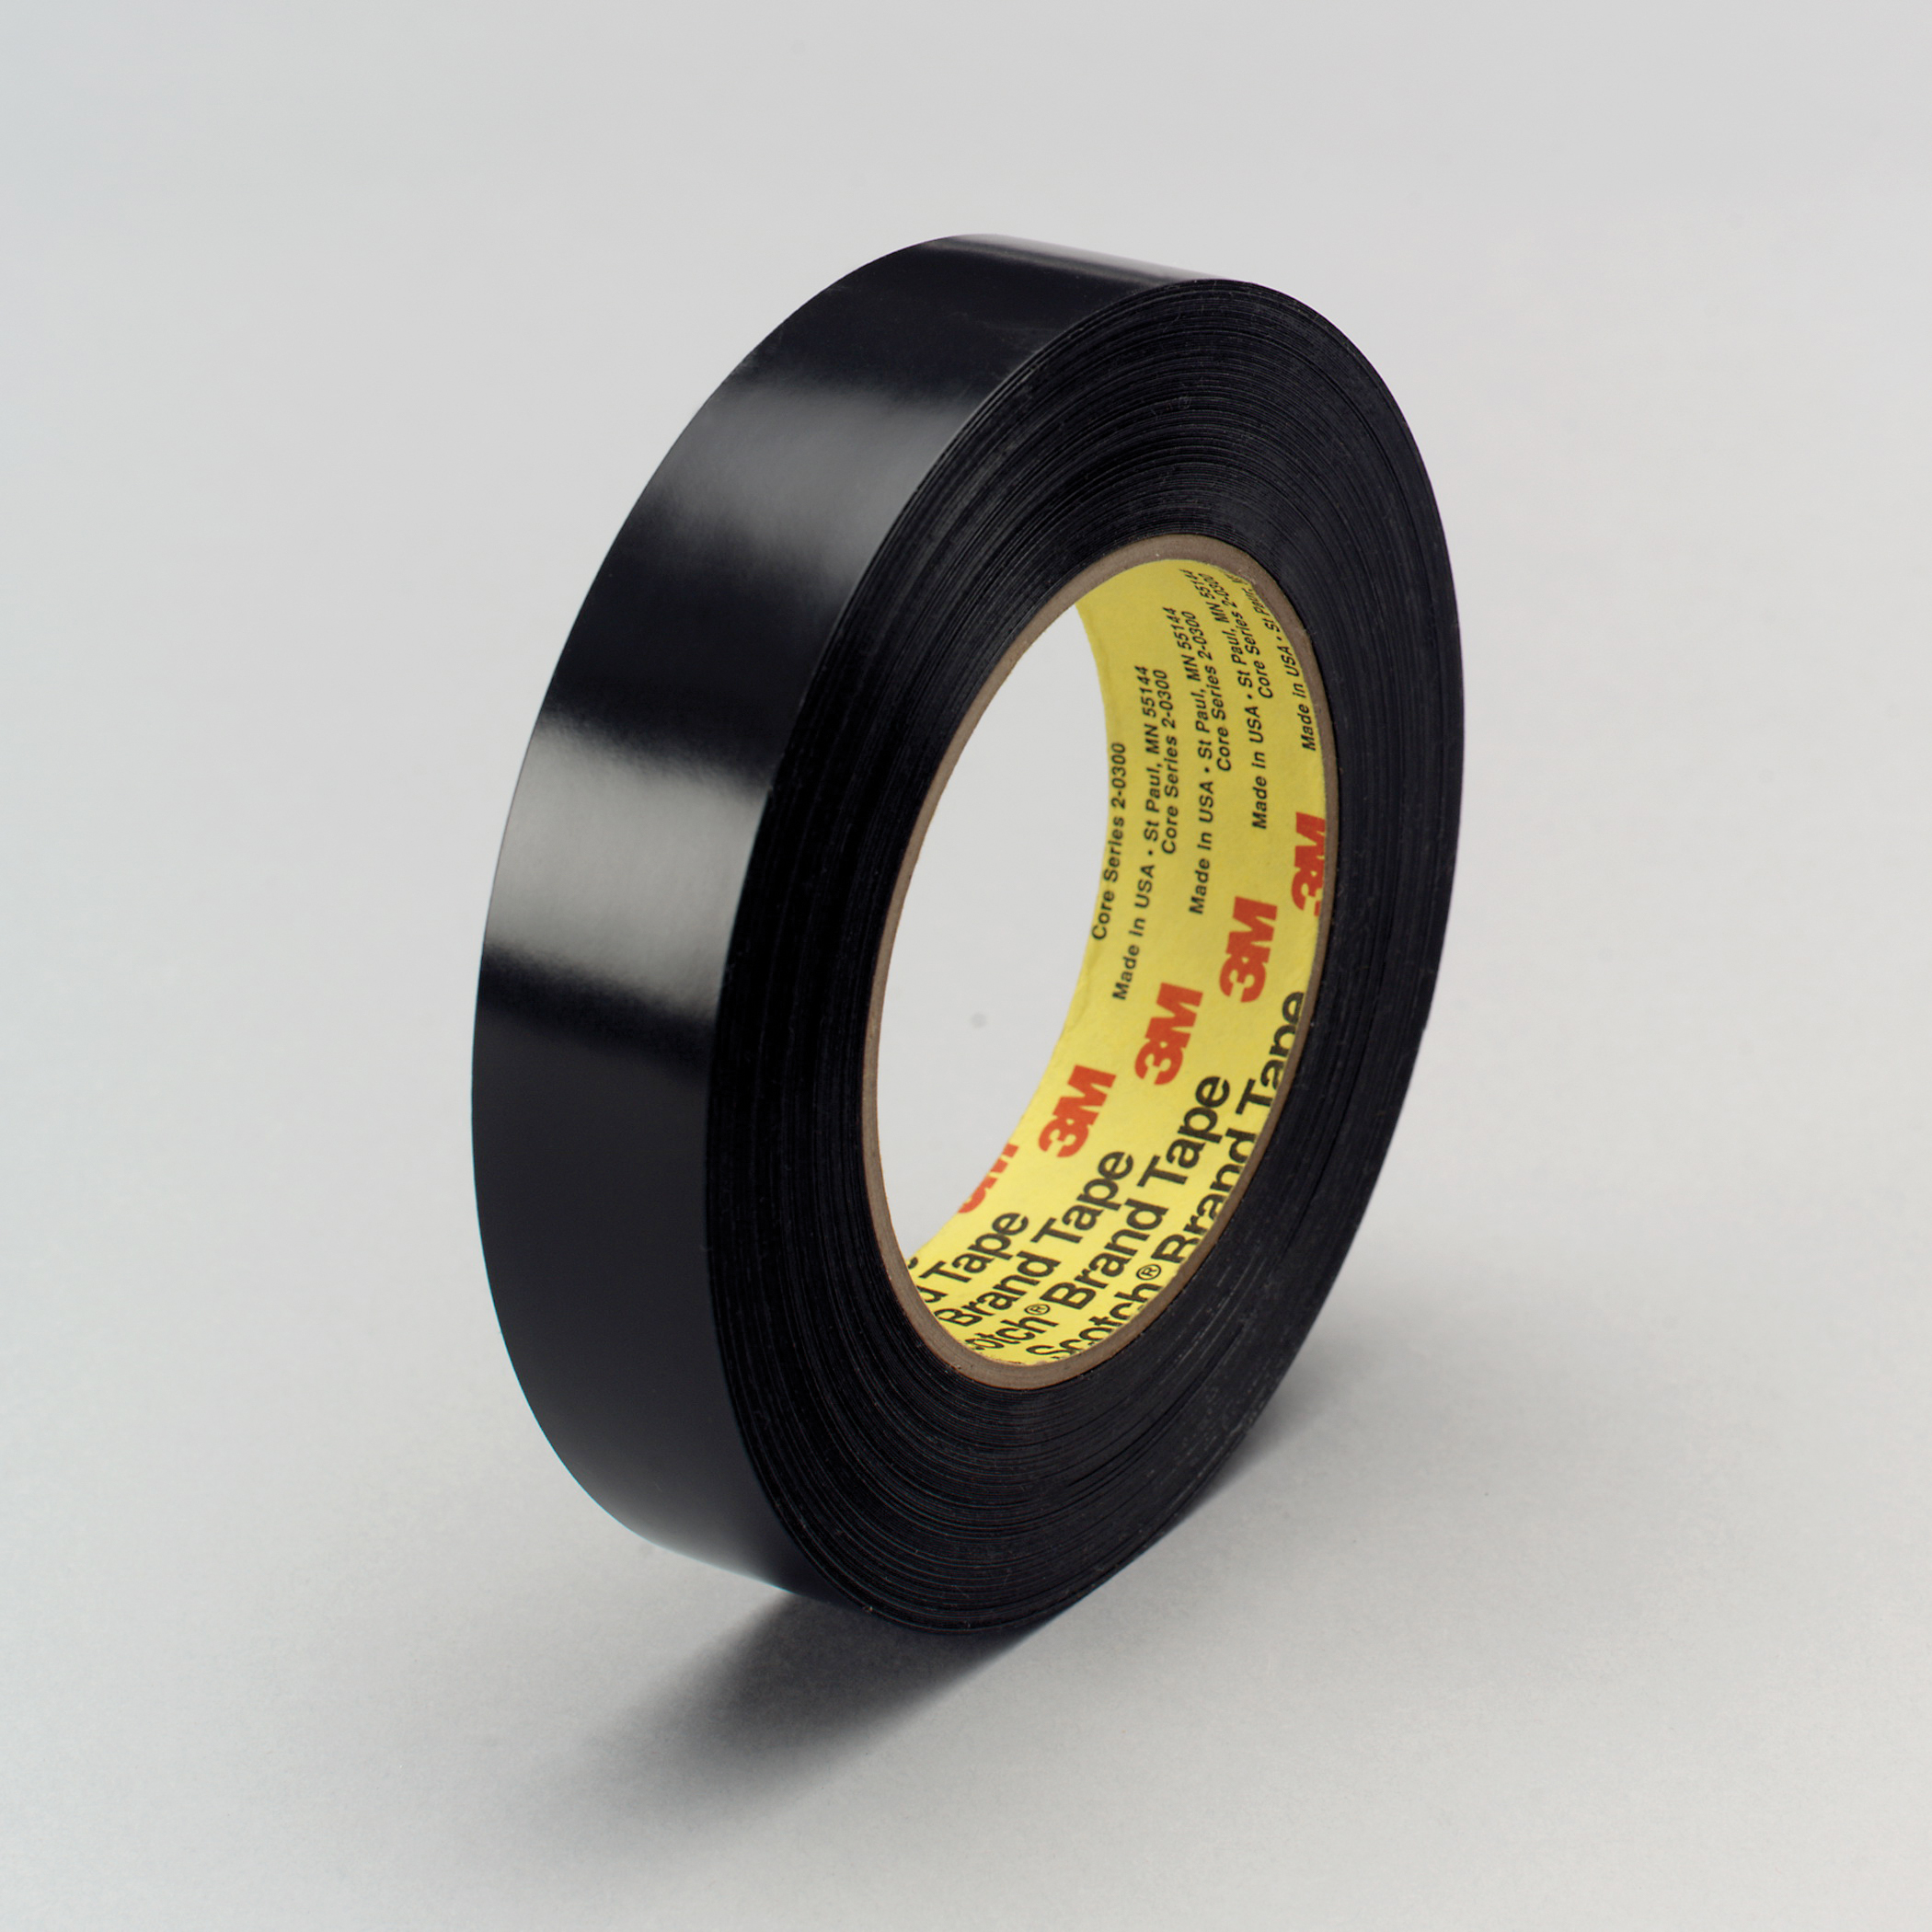 3M™ 021200-04319 Preservation Sealing Tape, 36 yd L x 2 in W, 9.5 mil THK, Rubber Adhesive, Polyethylene Backing, Black